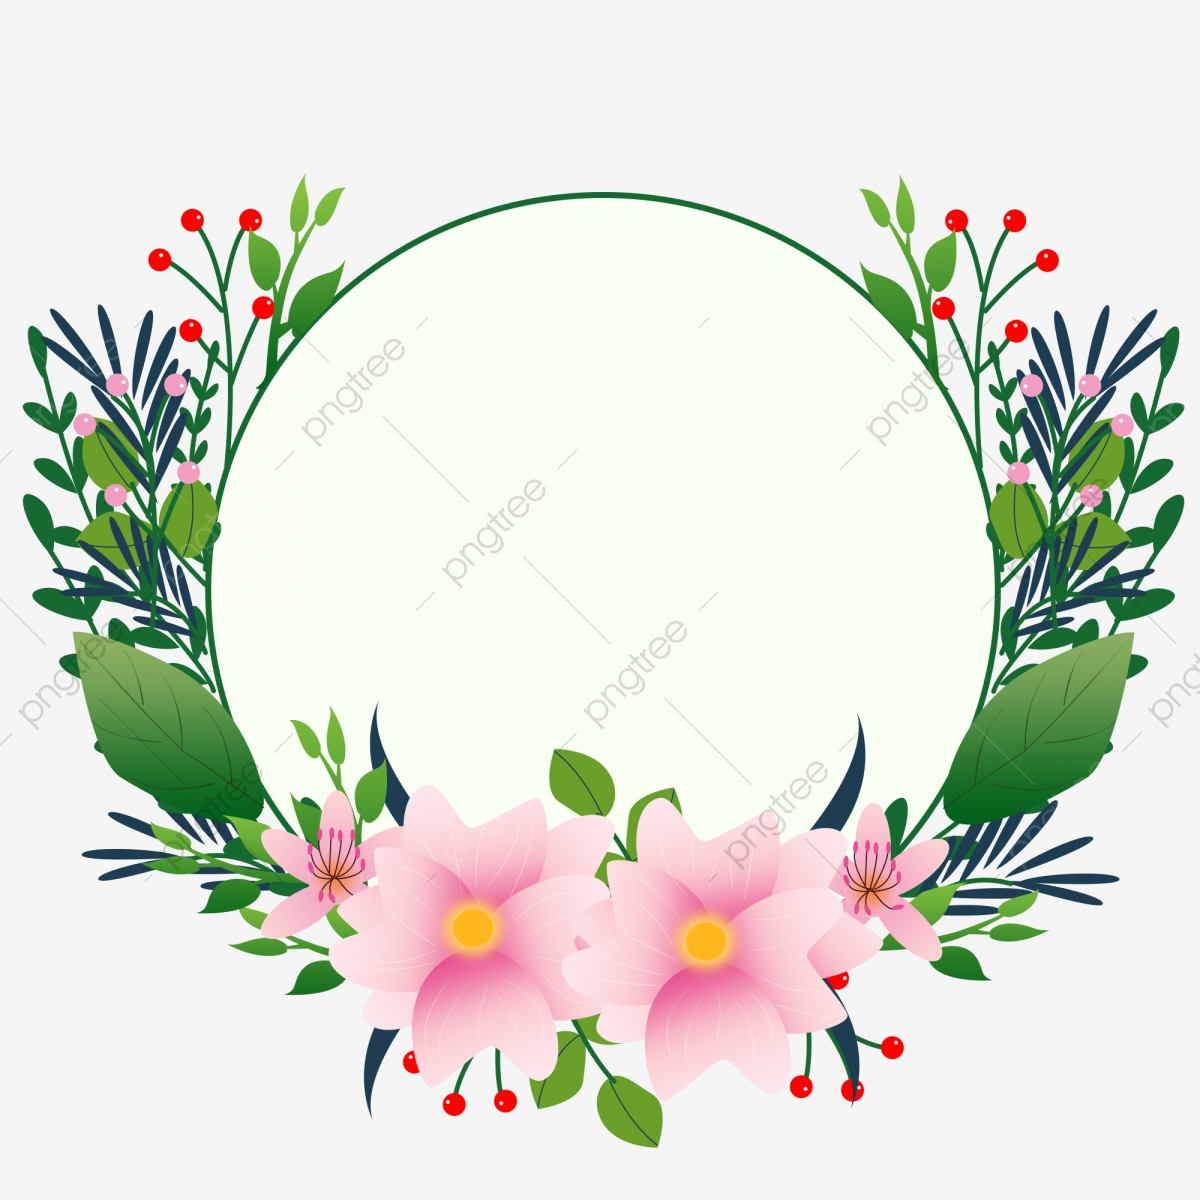 Hand Drawn Green Floral Round Border Design Element Hand Painted